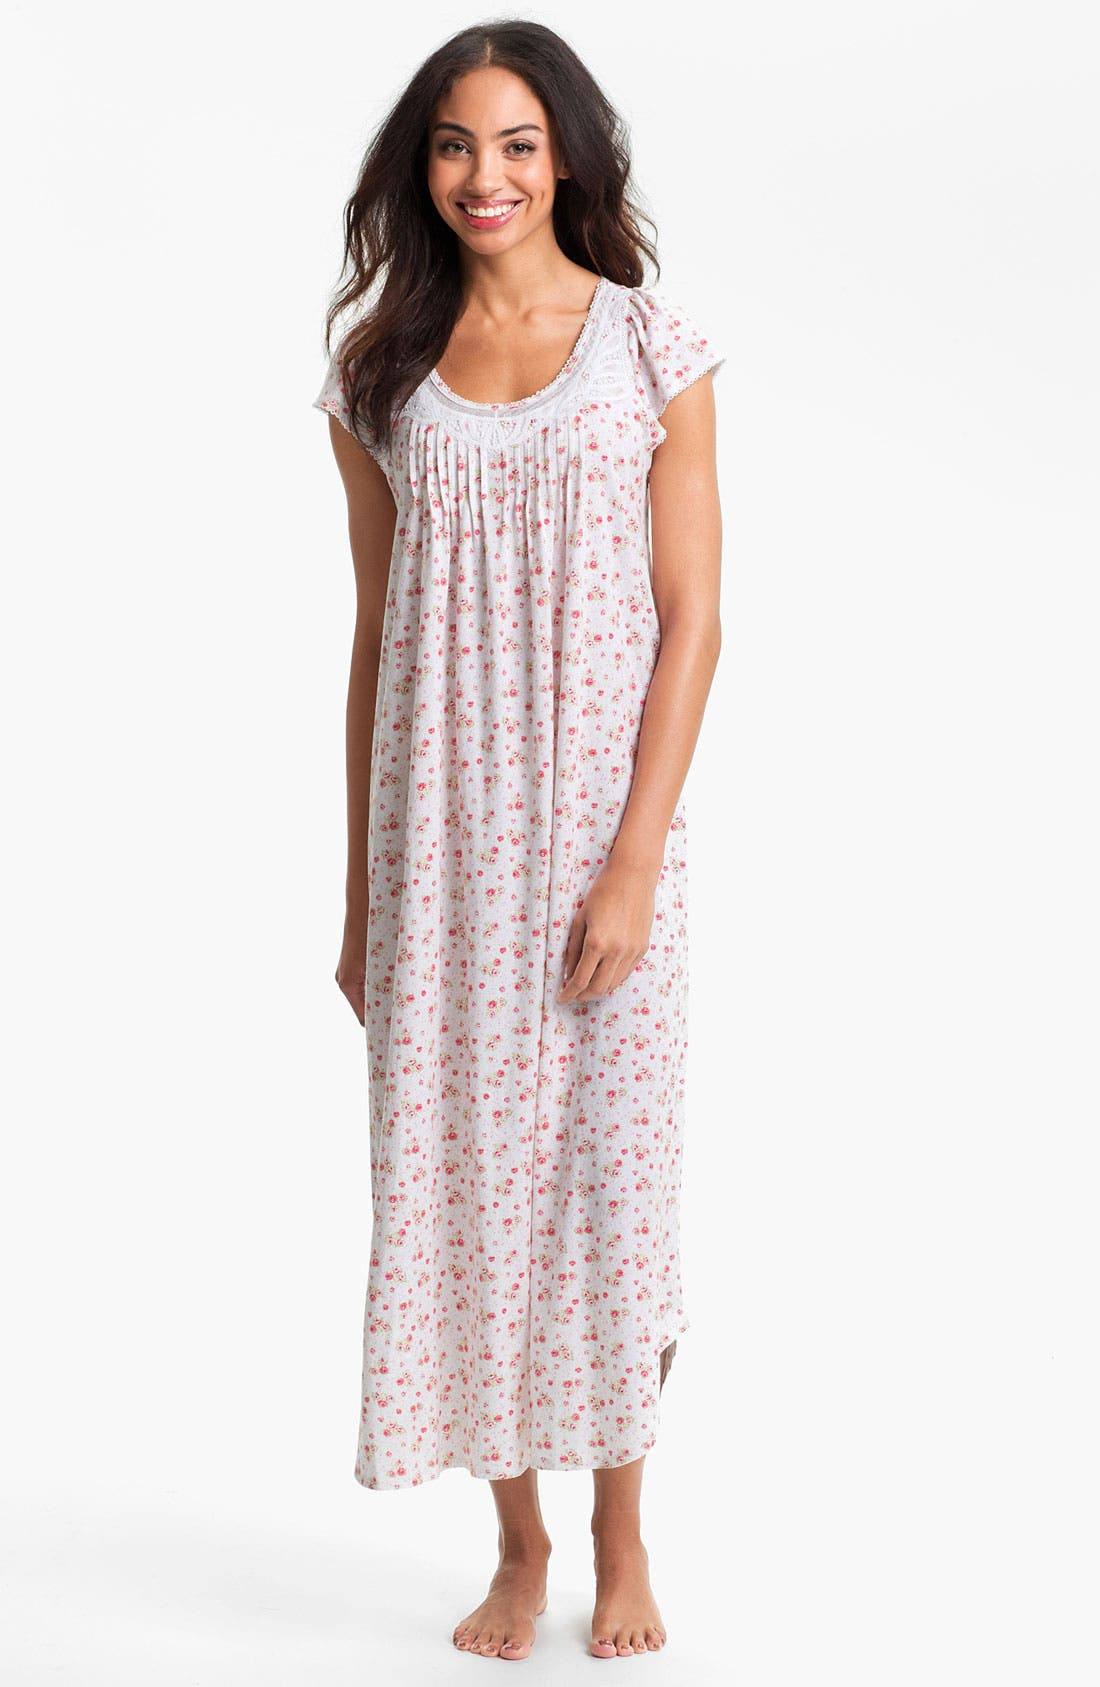 Main Image - Carole Hochman Designs 'Rose Cottage' Nightgown